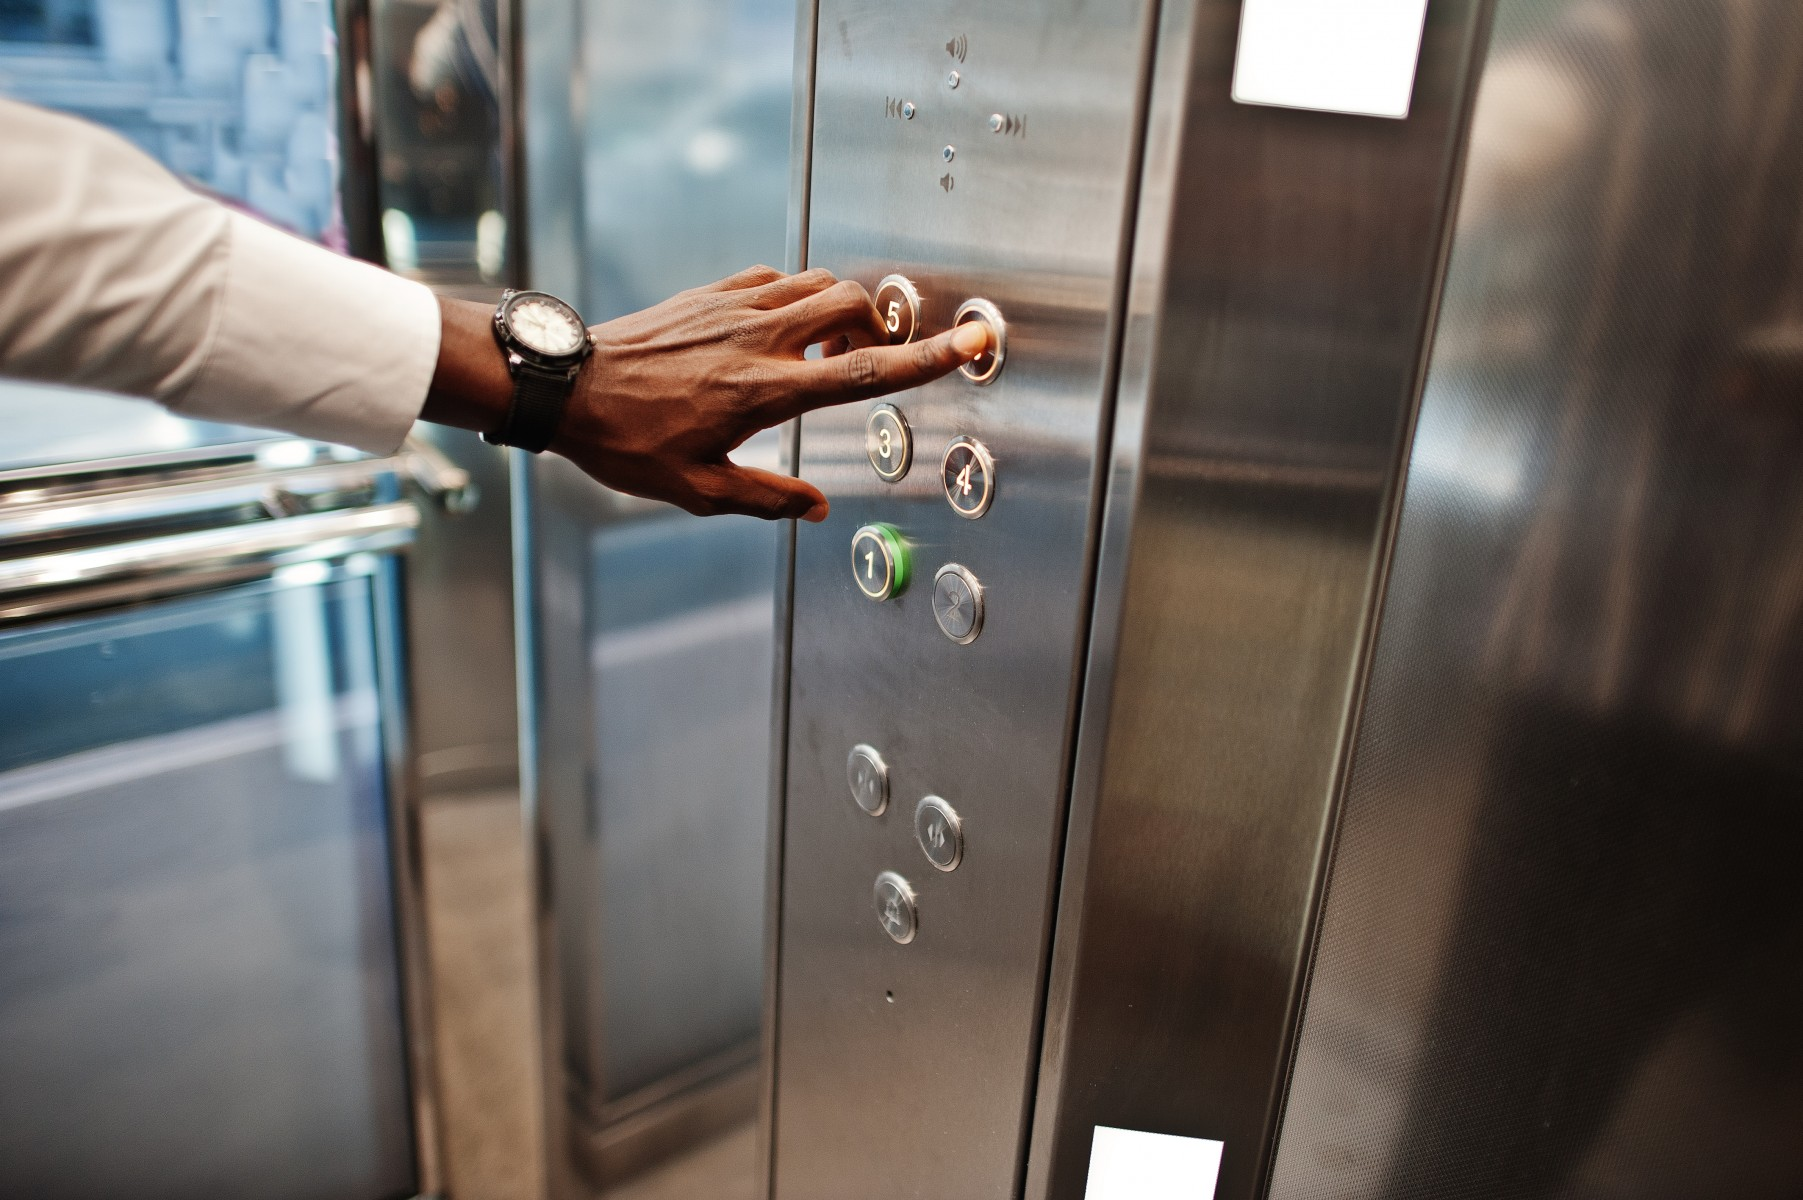 Sourcewell awards contracts in 'Elevators, Escalators, and Moving Walks with Related Equipment' through solicitation #080420. Sourcewell contracts are solicited across North America and competitively awarded on behalf of Sourcewell current and potential government and education participating agencies.